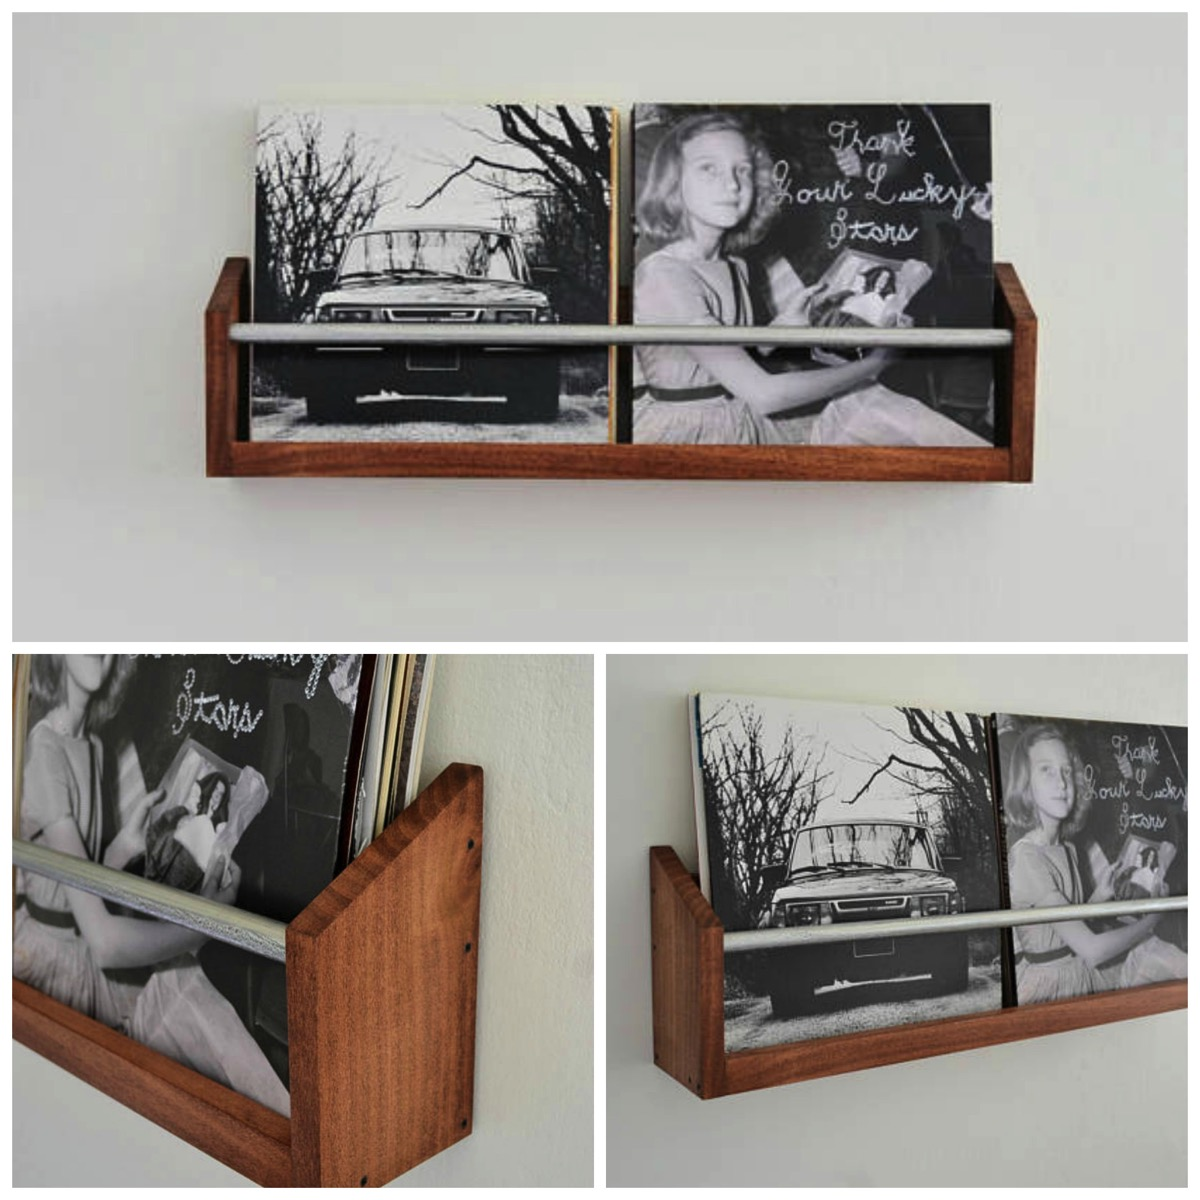 Wood and metal vinyl record wall holder